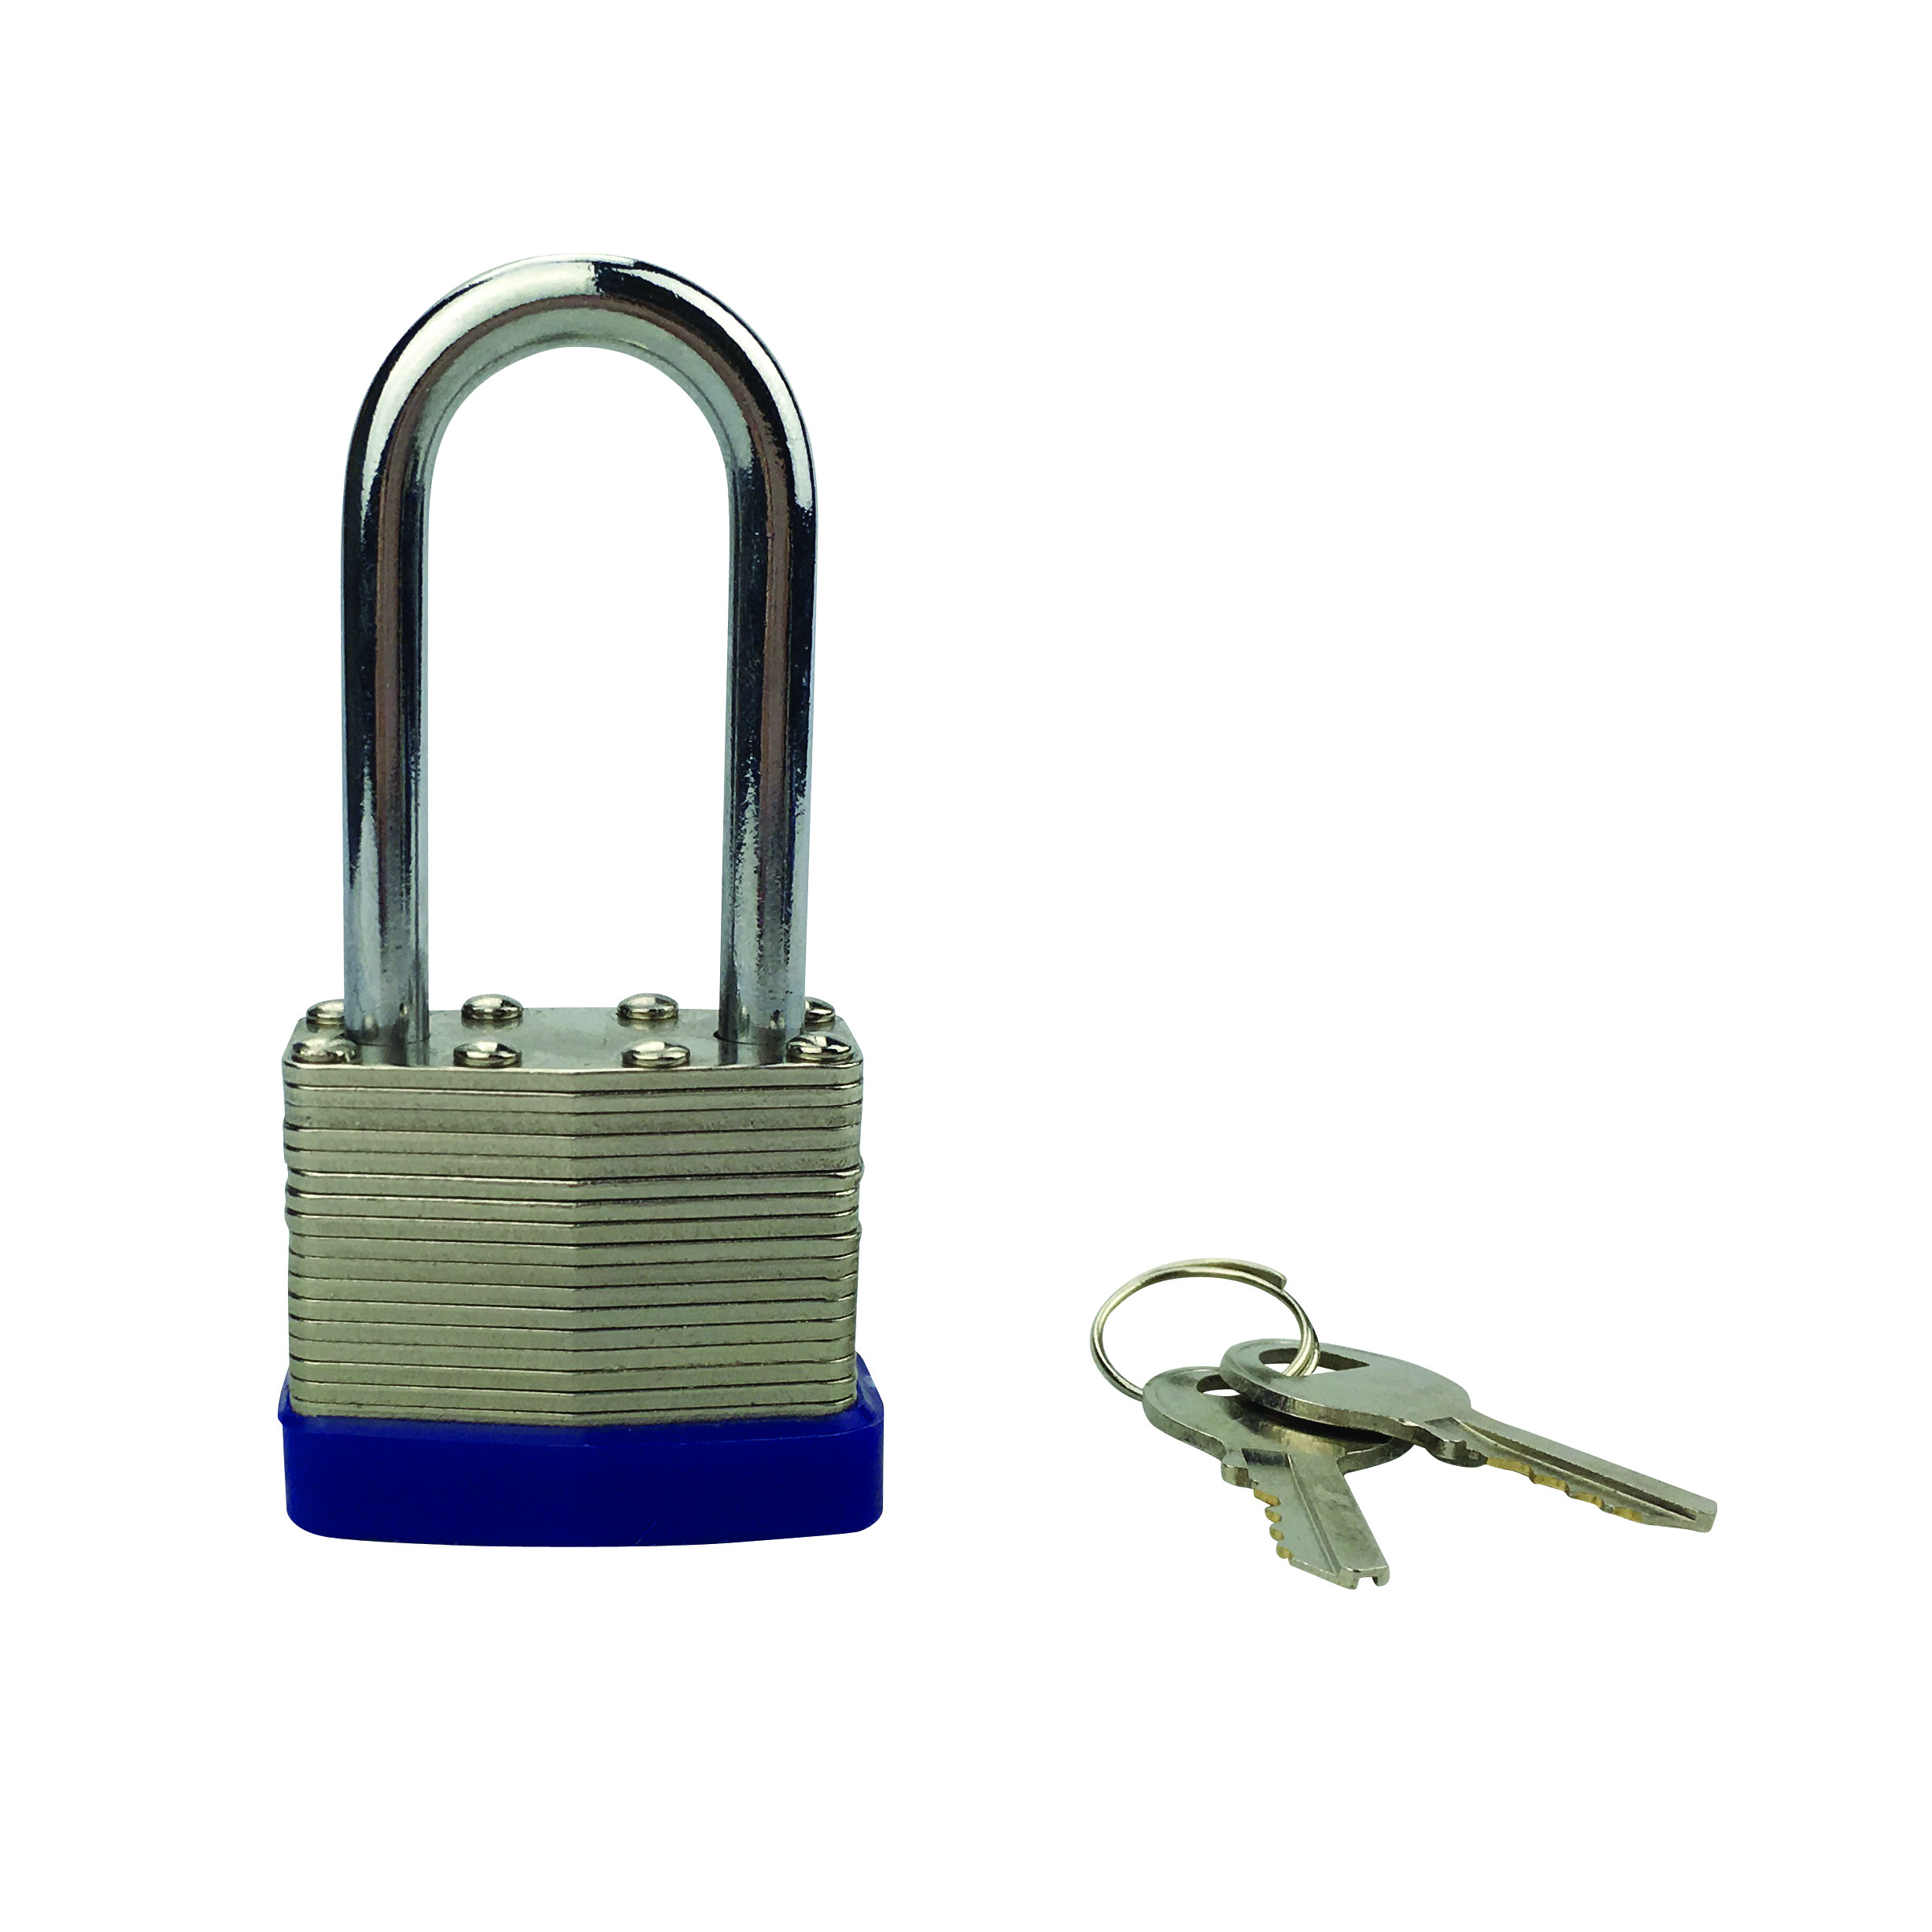 Laminated Safety Padlock